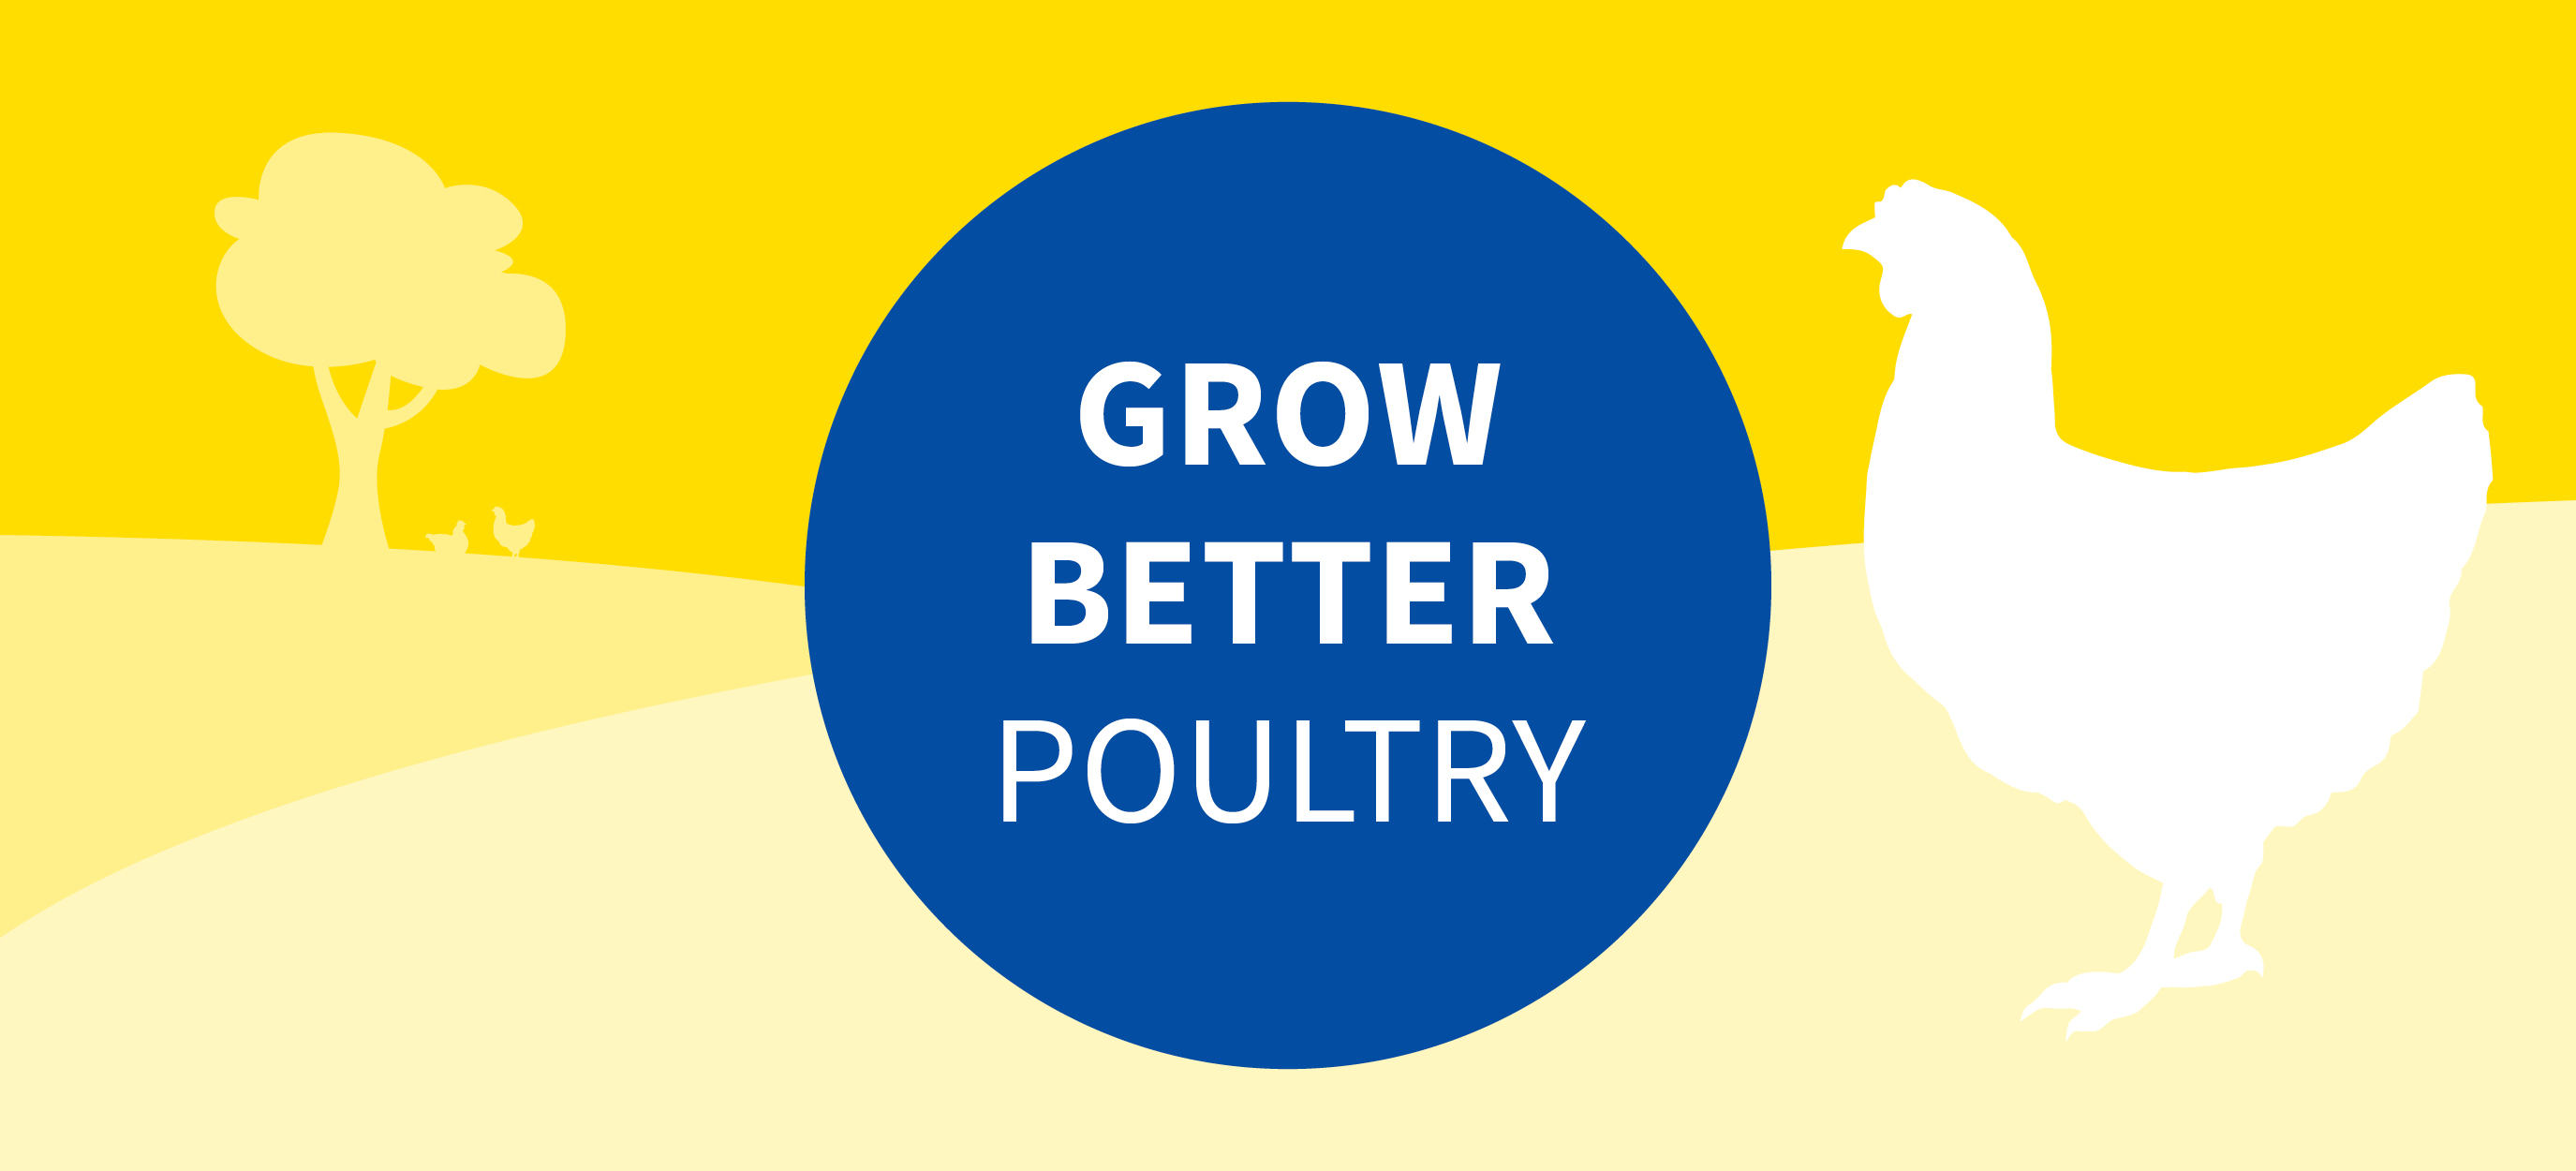 Grow better poultry